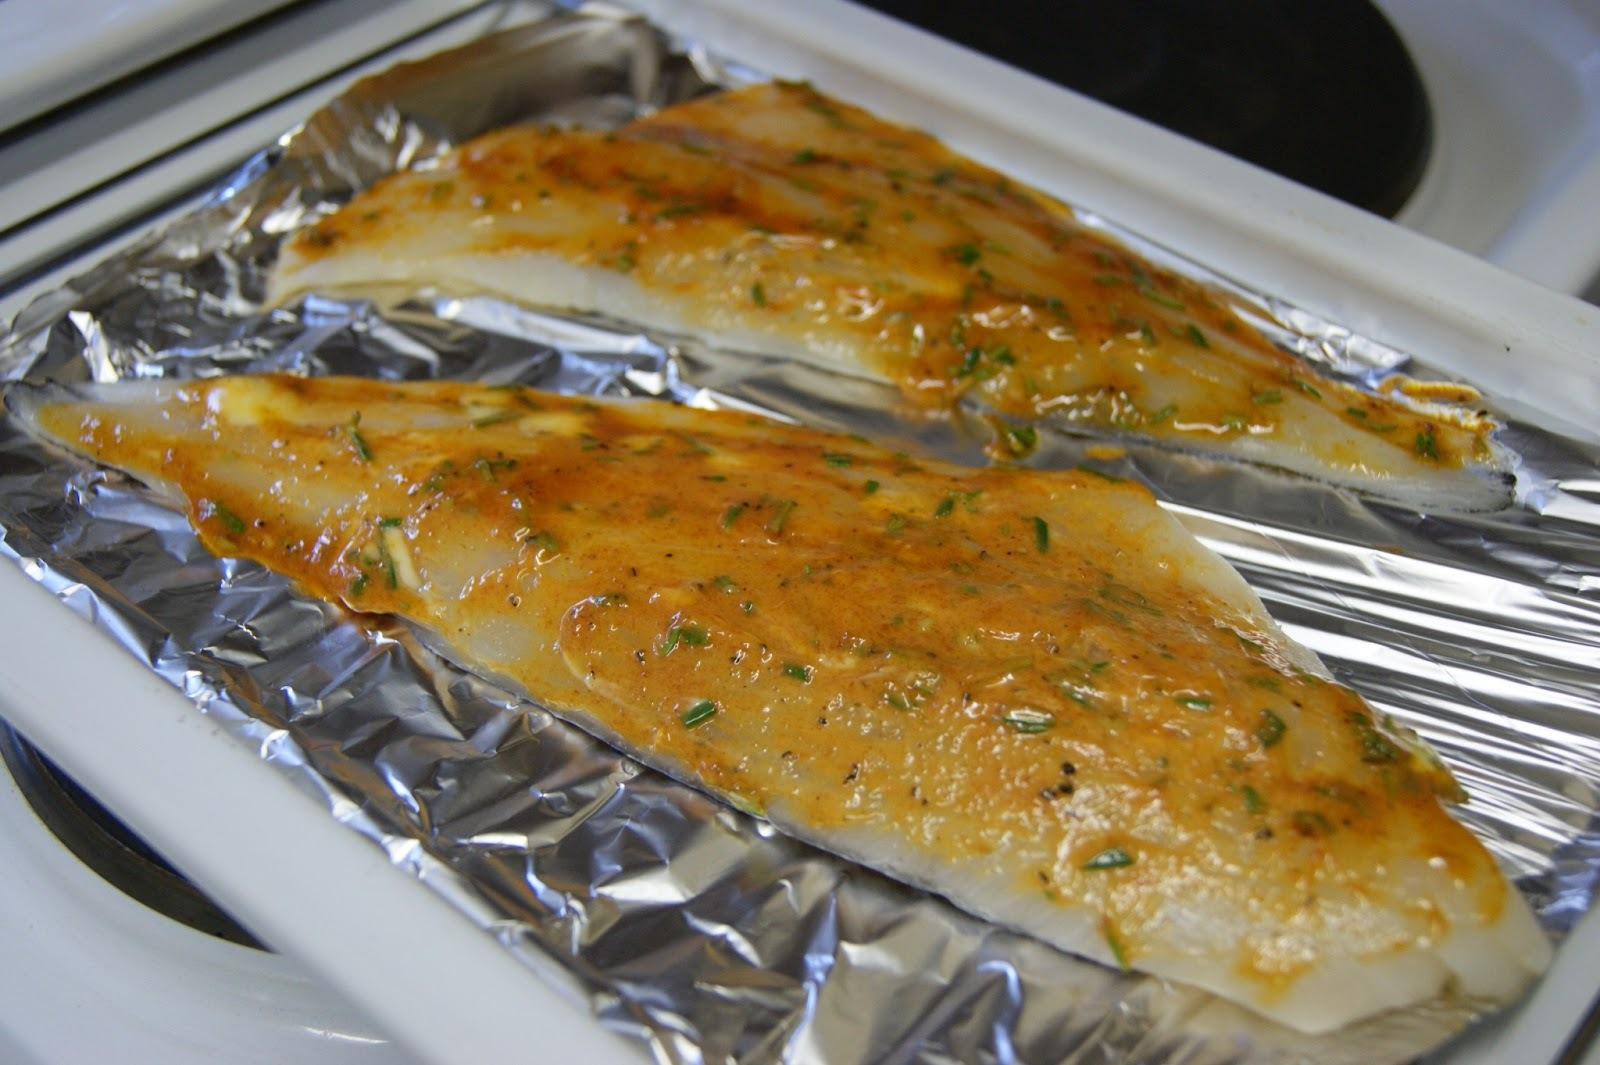 Grilled Haddock with Tomato and Rosemary Butter - Surprisingly Frugal